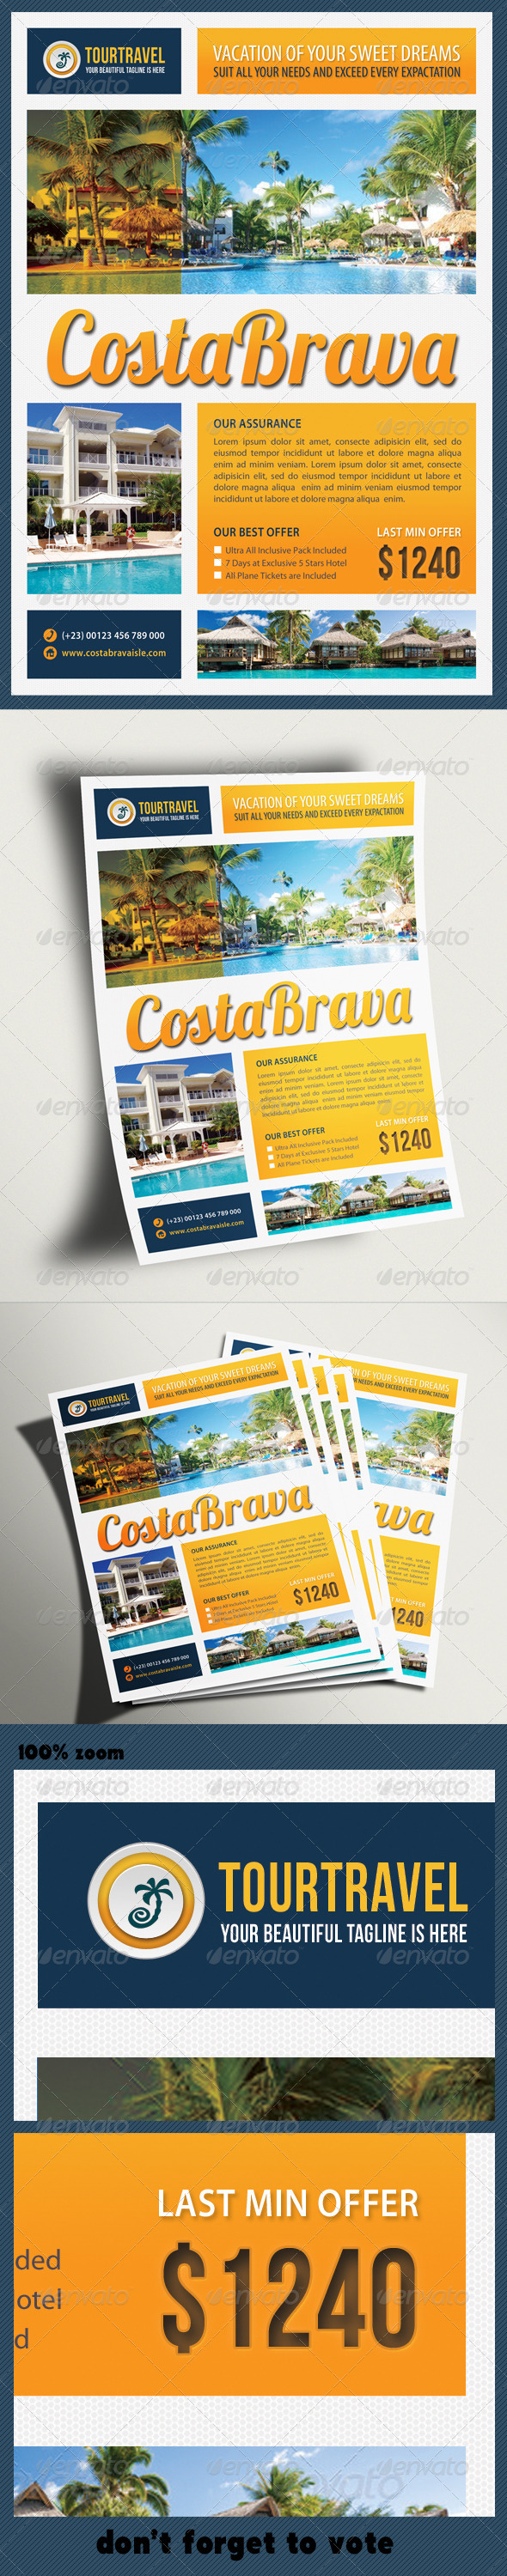 Travel Agency Corporate Flyer 03 - Holidays Events